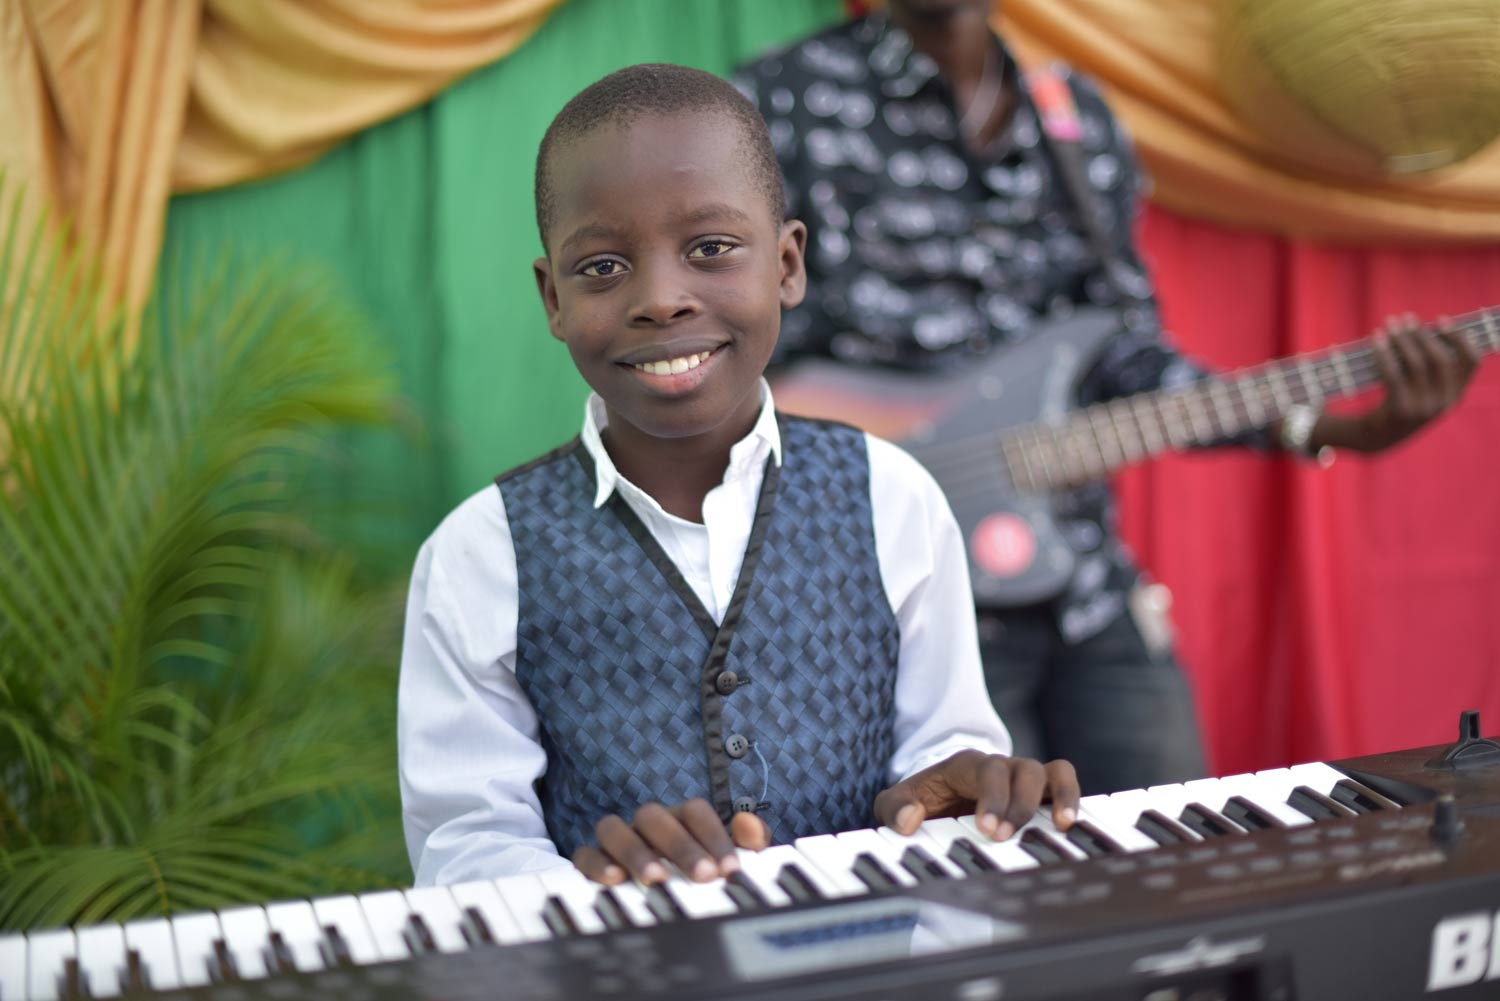 Integrated Music and Arts Education - Founded on the belief that music is a transformational tool that brings about change in the lives of young people, our program trains teachers and provides technical support on instruments, music and art classes, and working with special needs children.